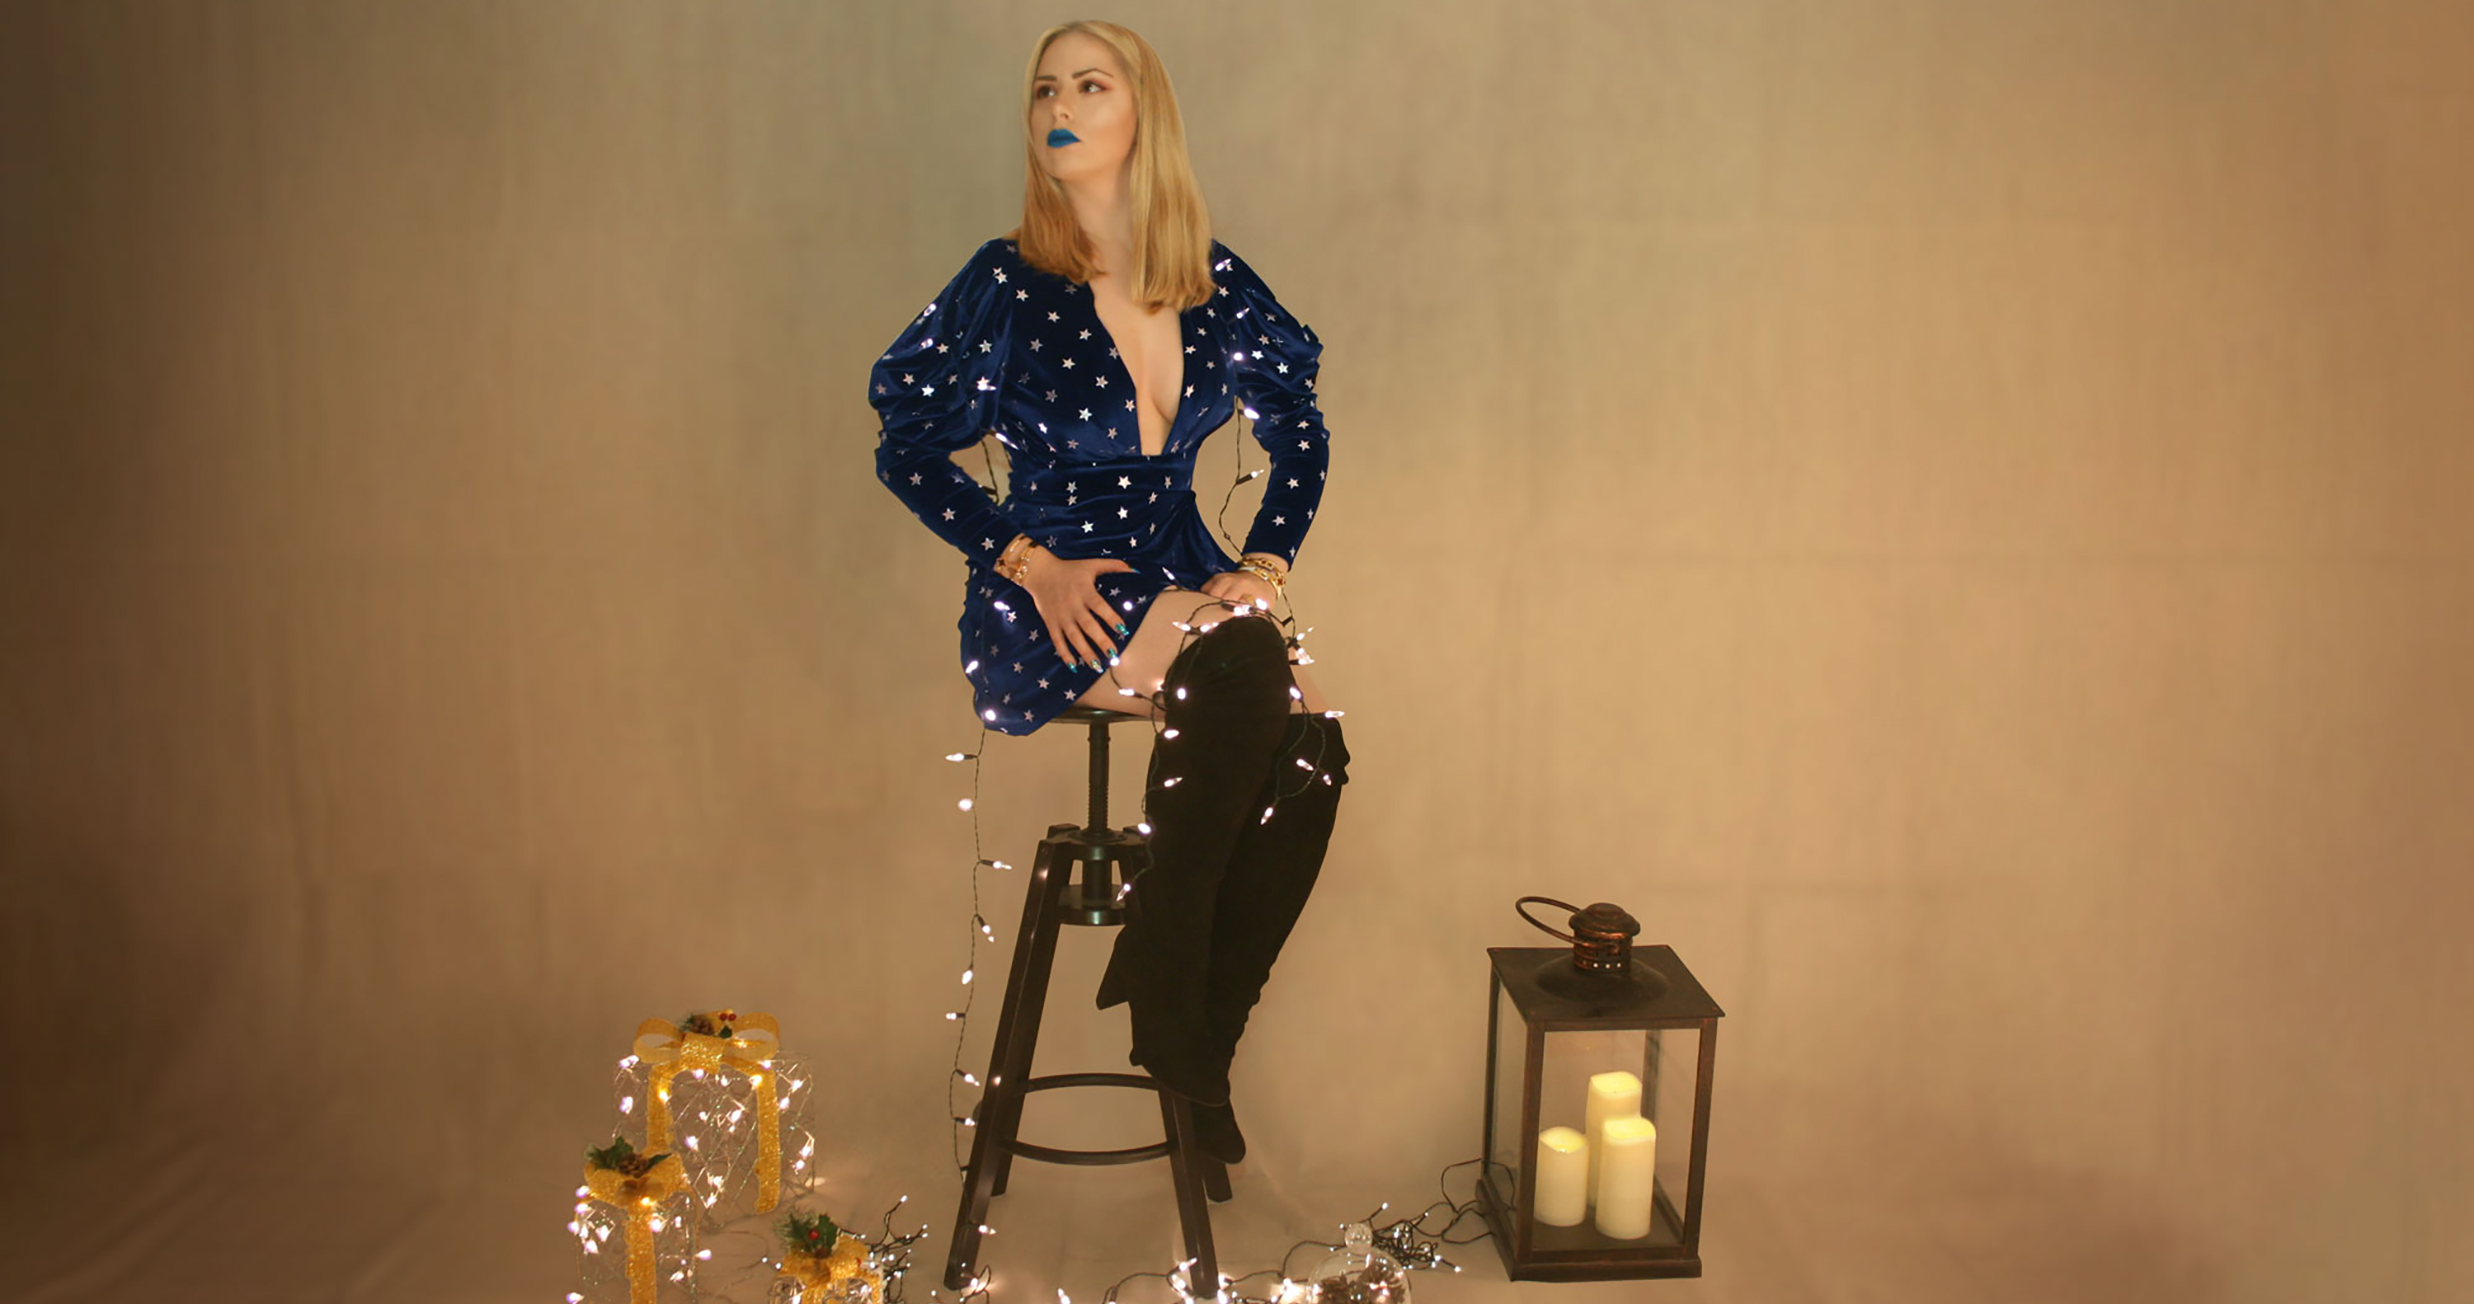 The Shoot: A Christmas Editorial, part 3